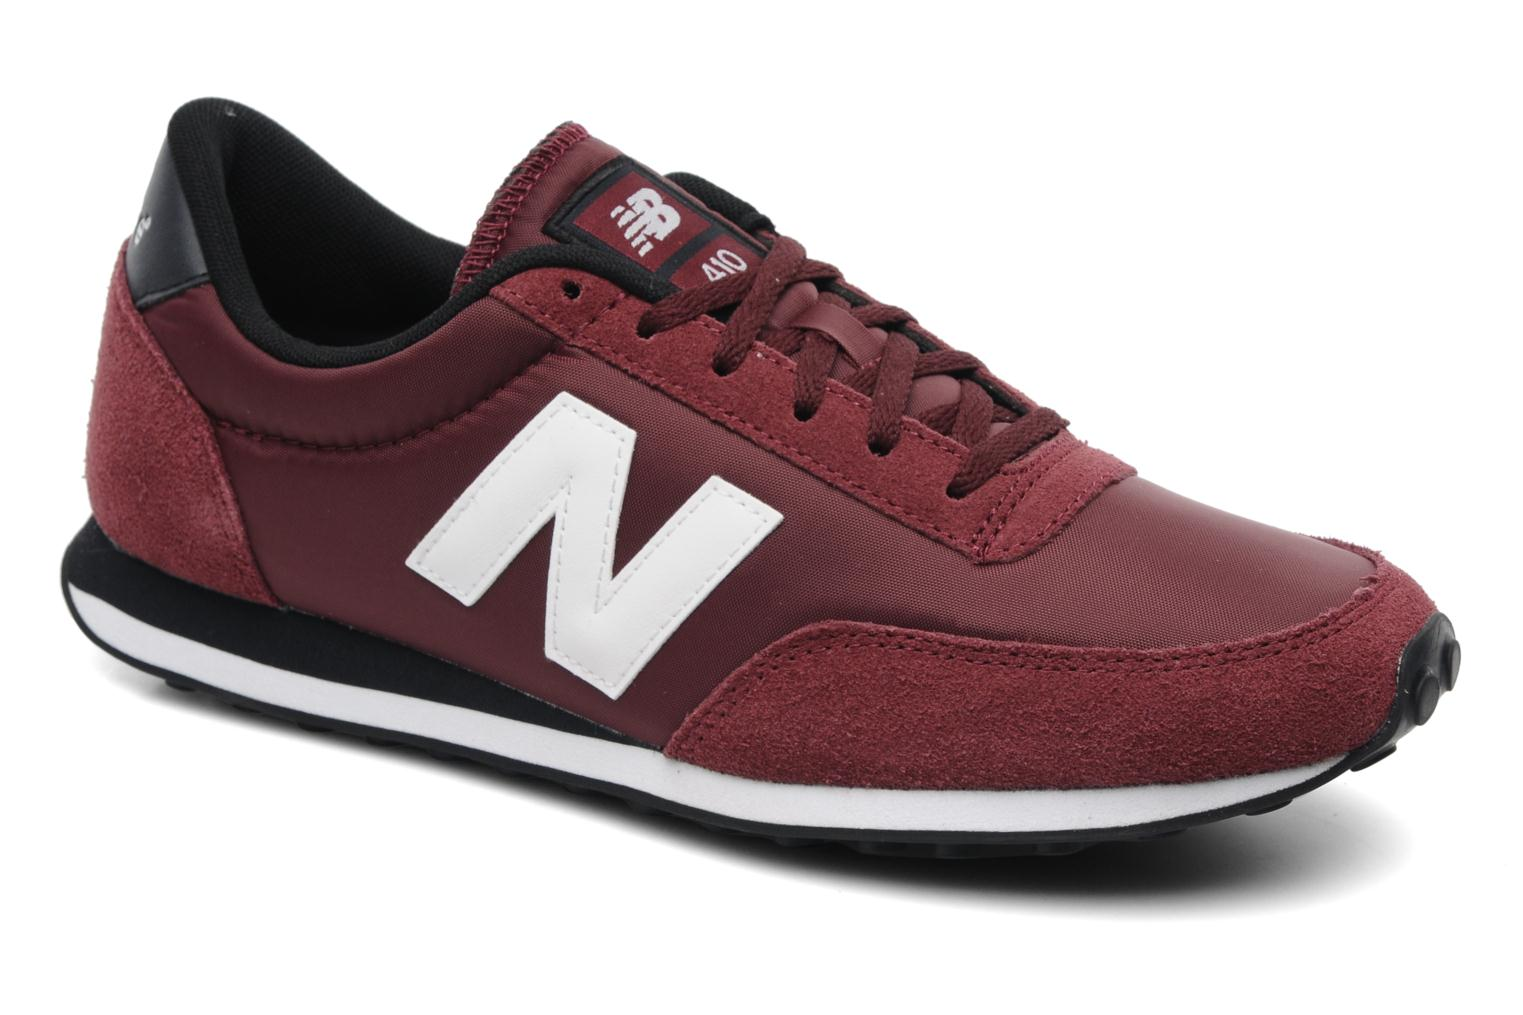 new balance sneakers u410 bordeaux